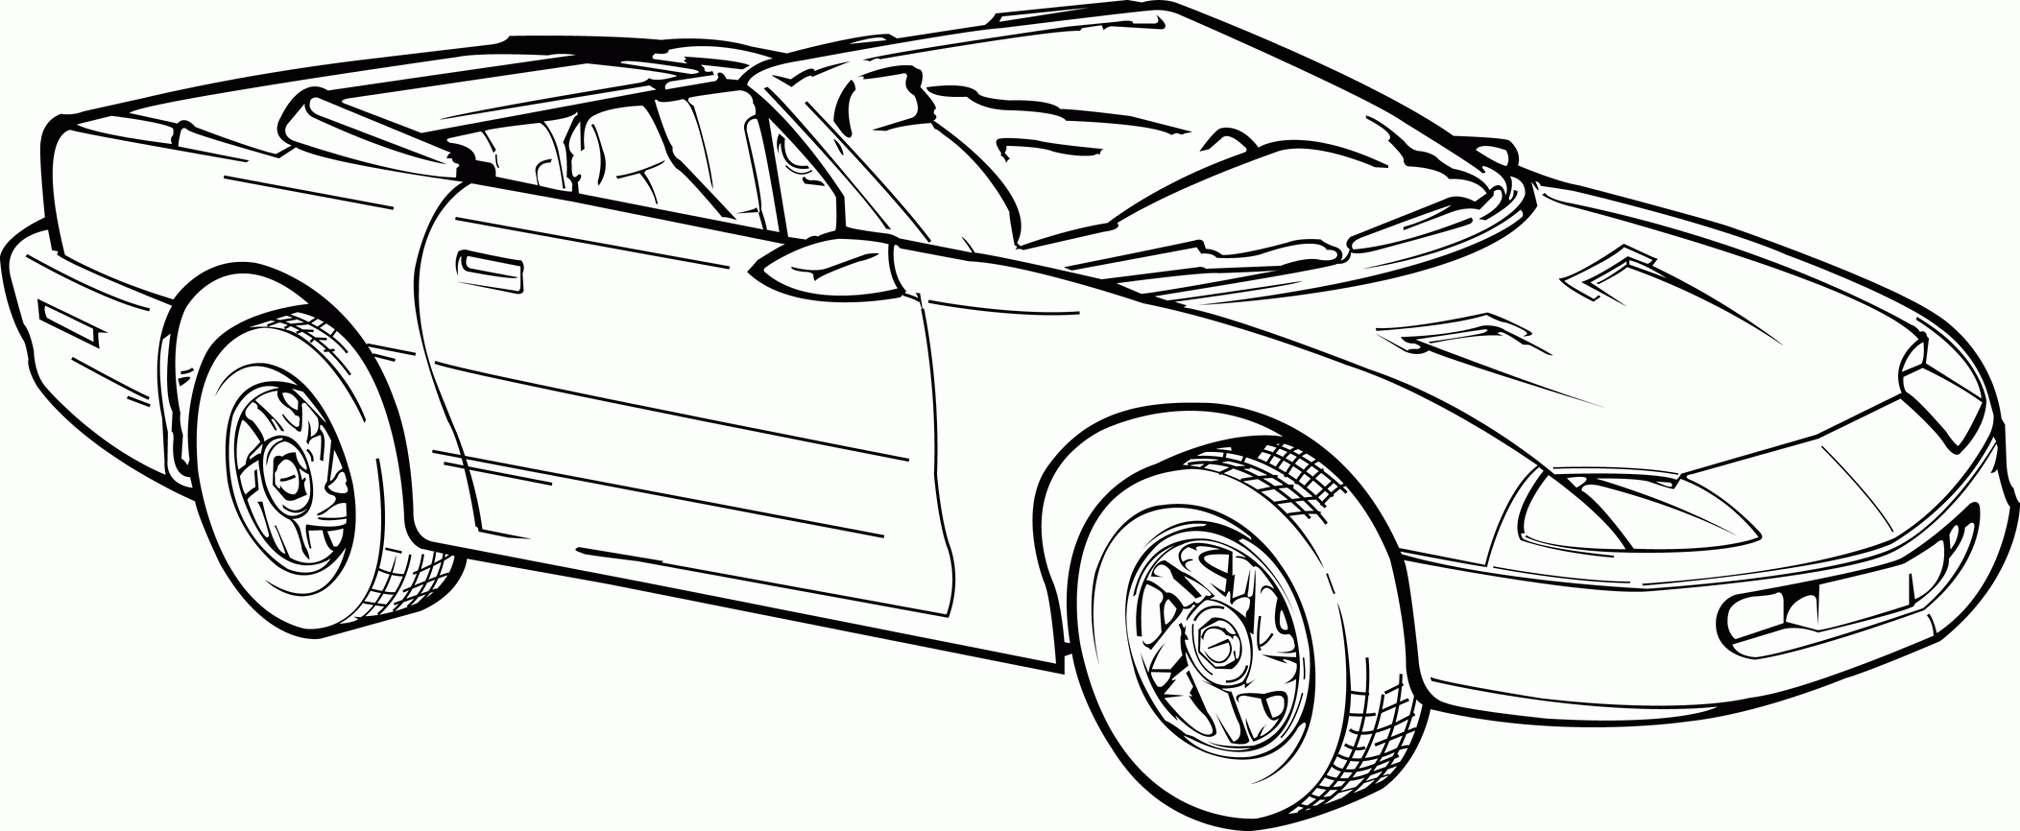 Camaro Coloring Pages - Chevrolet Camaro Coloring Pages Az Coloring Pages